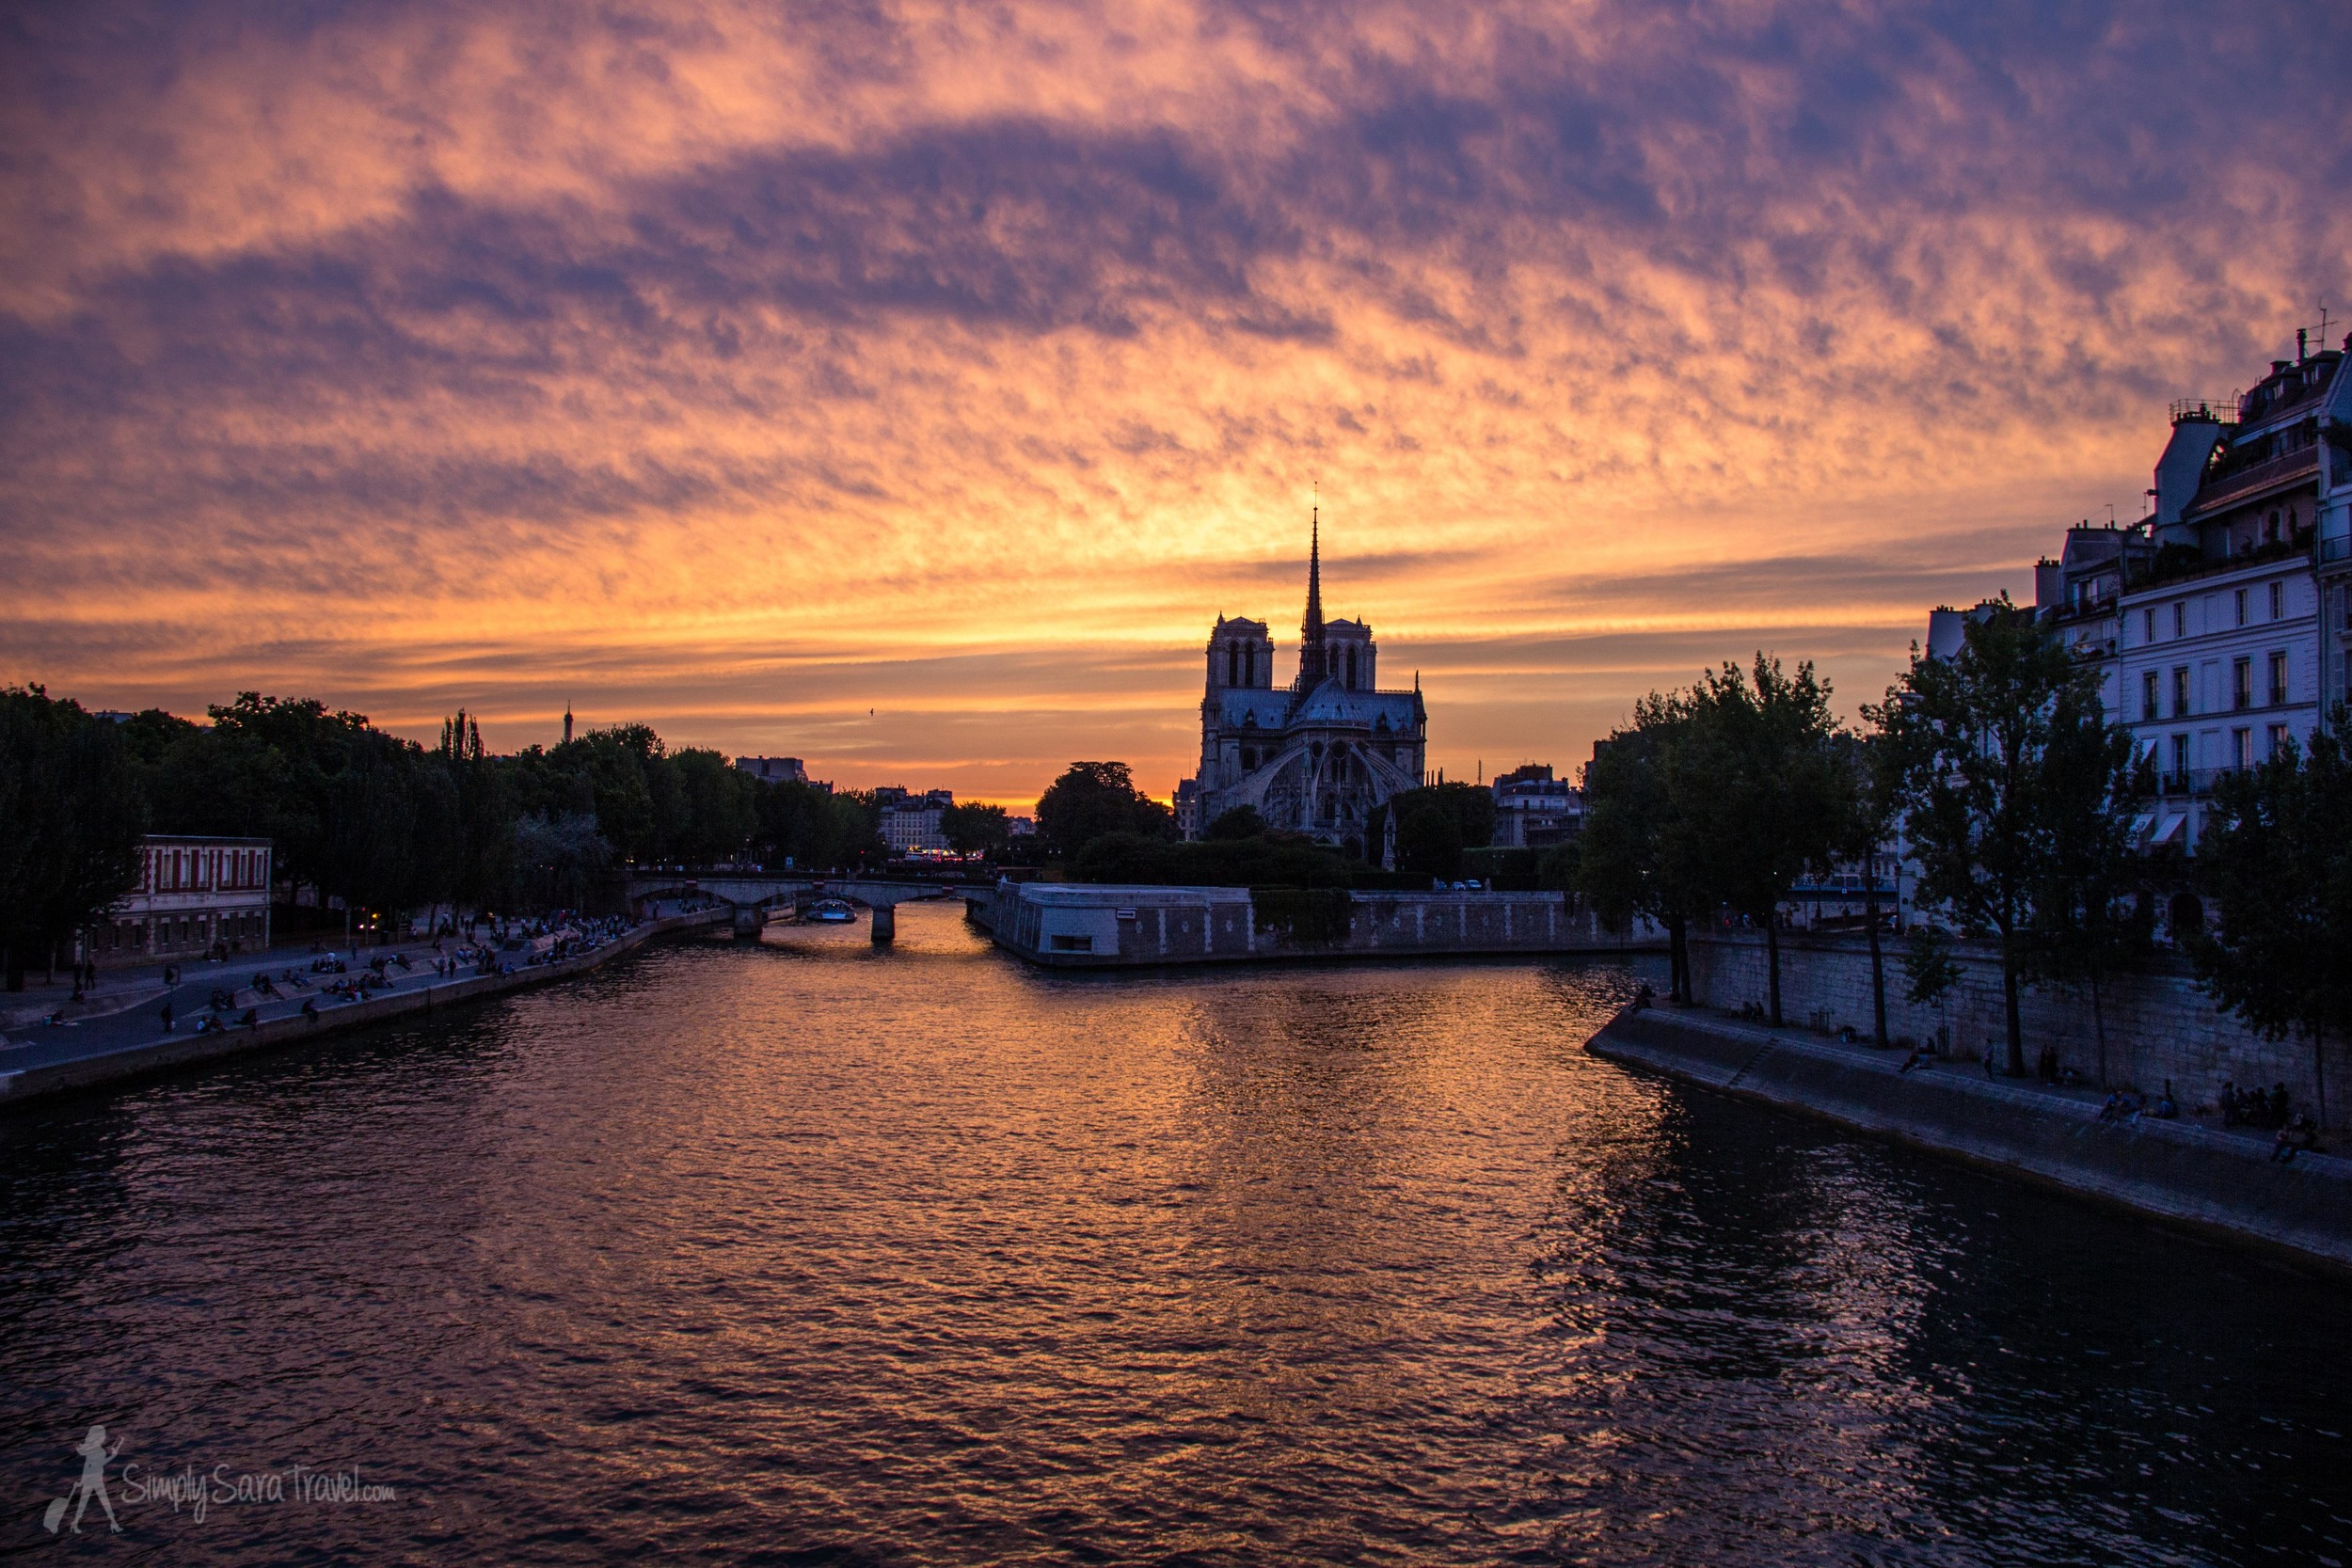 On our first night back in Paris, we were treated to this stunner of a sunset.